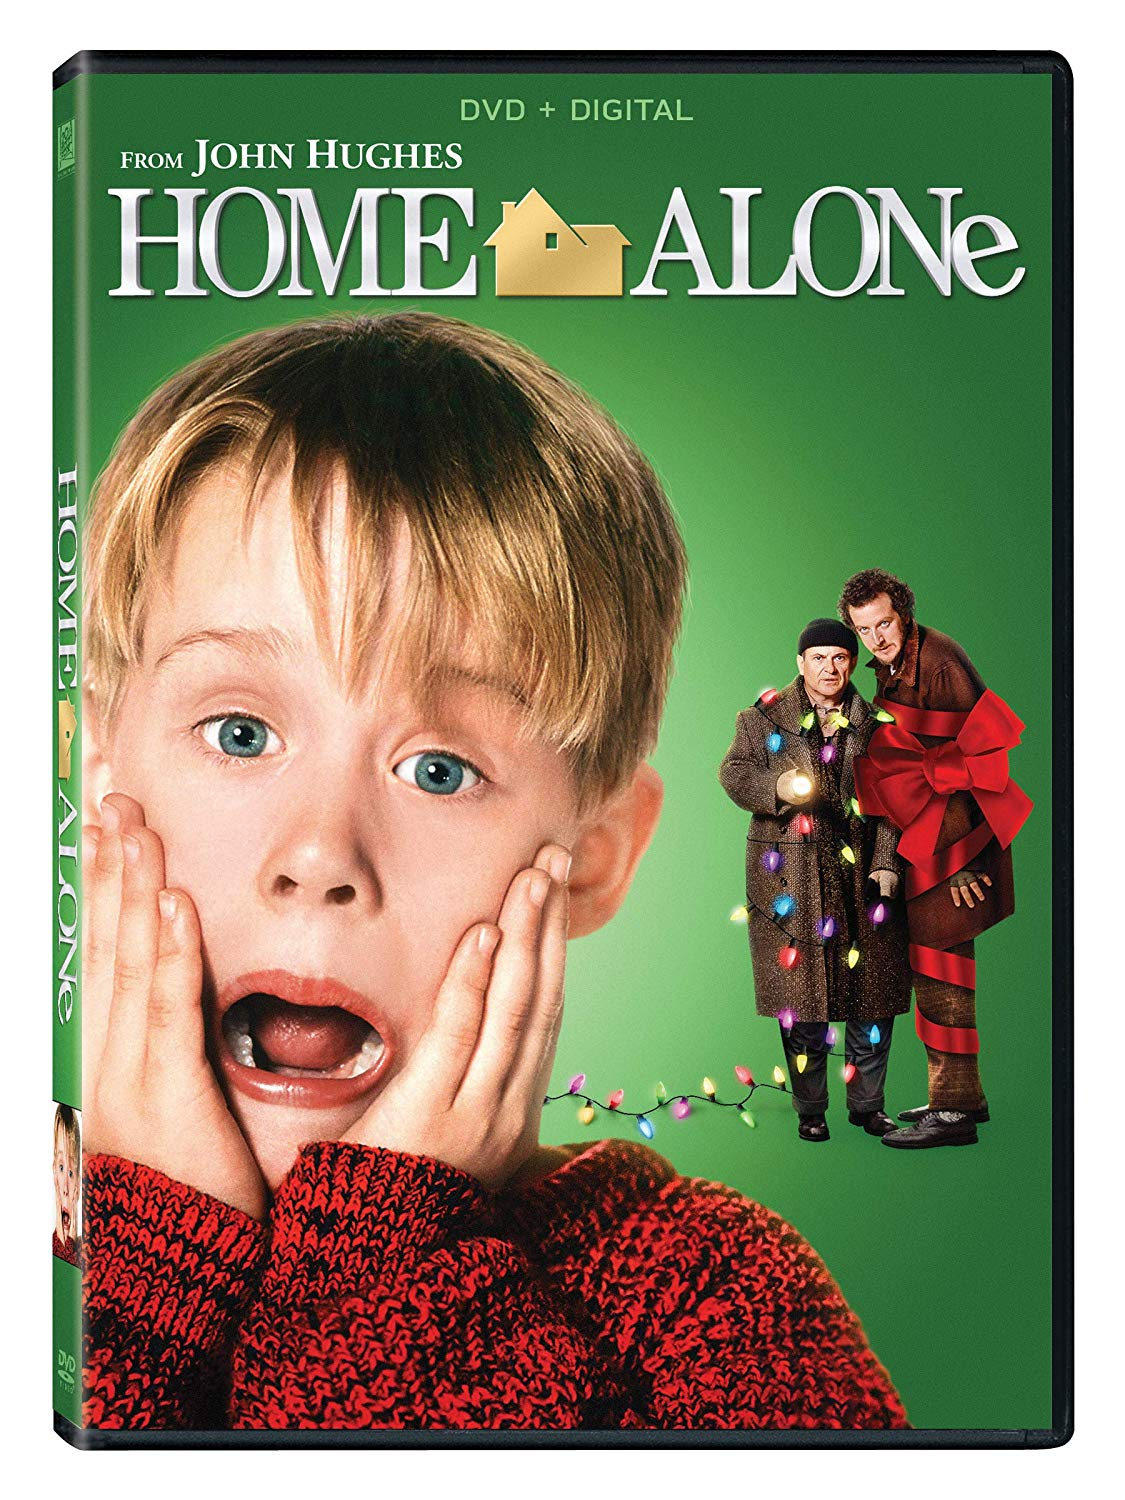 home-alone-movie-dvd